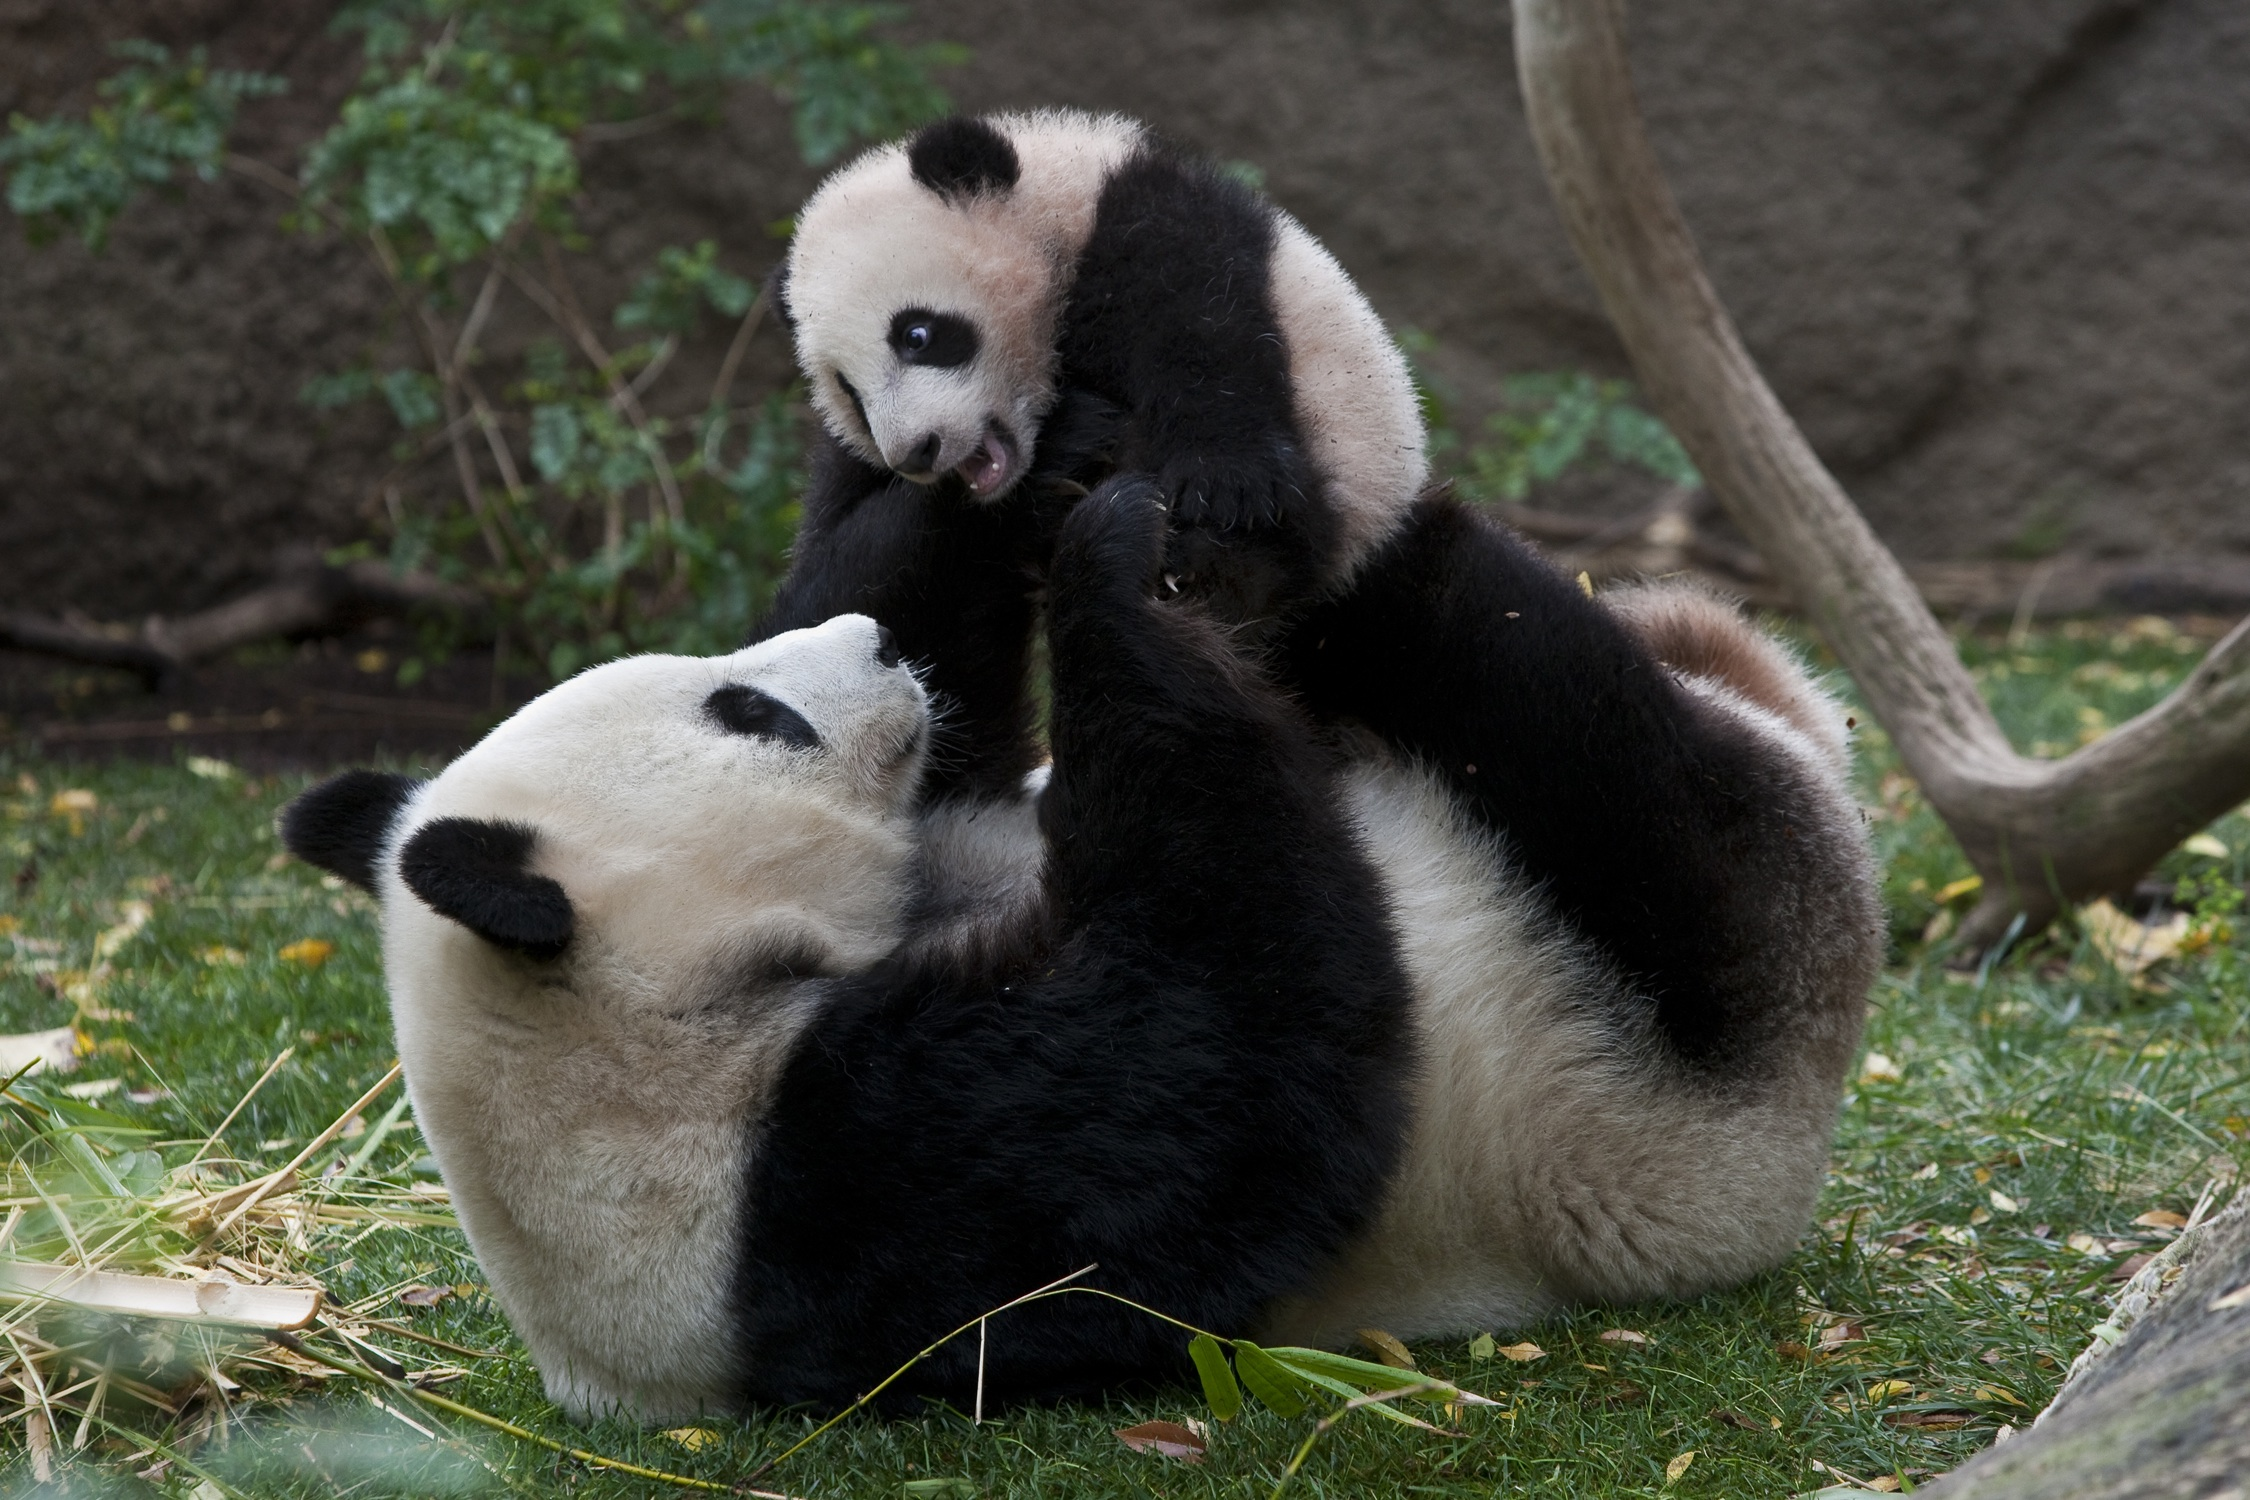 Giant panda mother and cub, Bai Yun and Yun Zi. Photo: A Cute Day/Green Animal World.